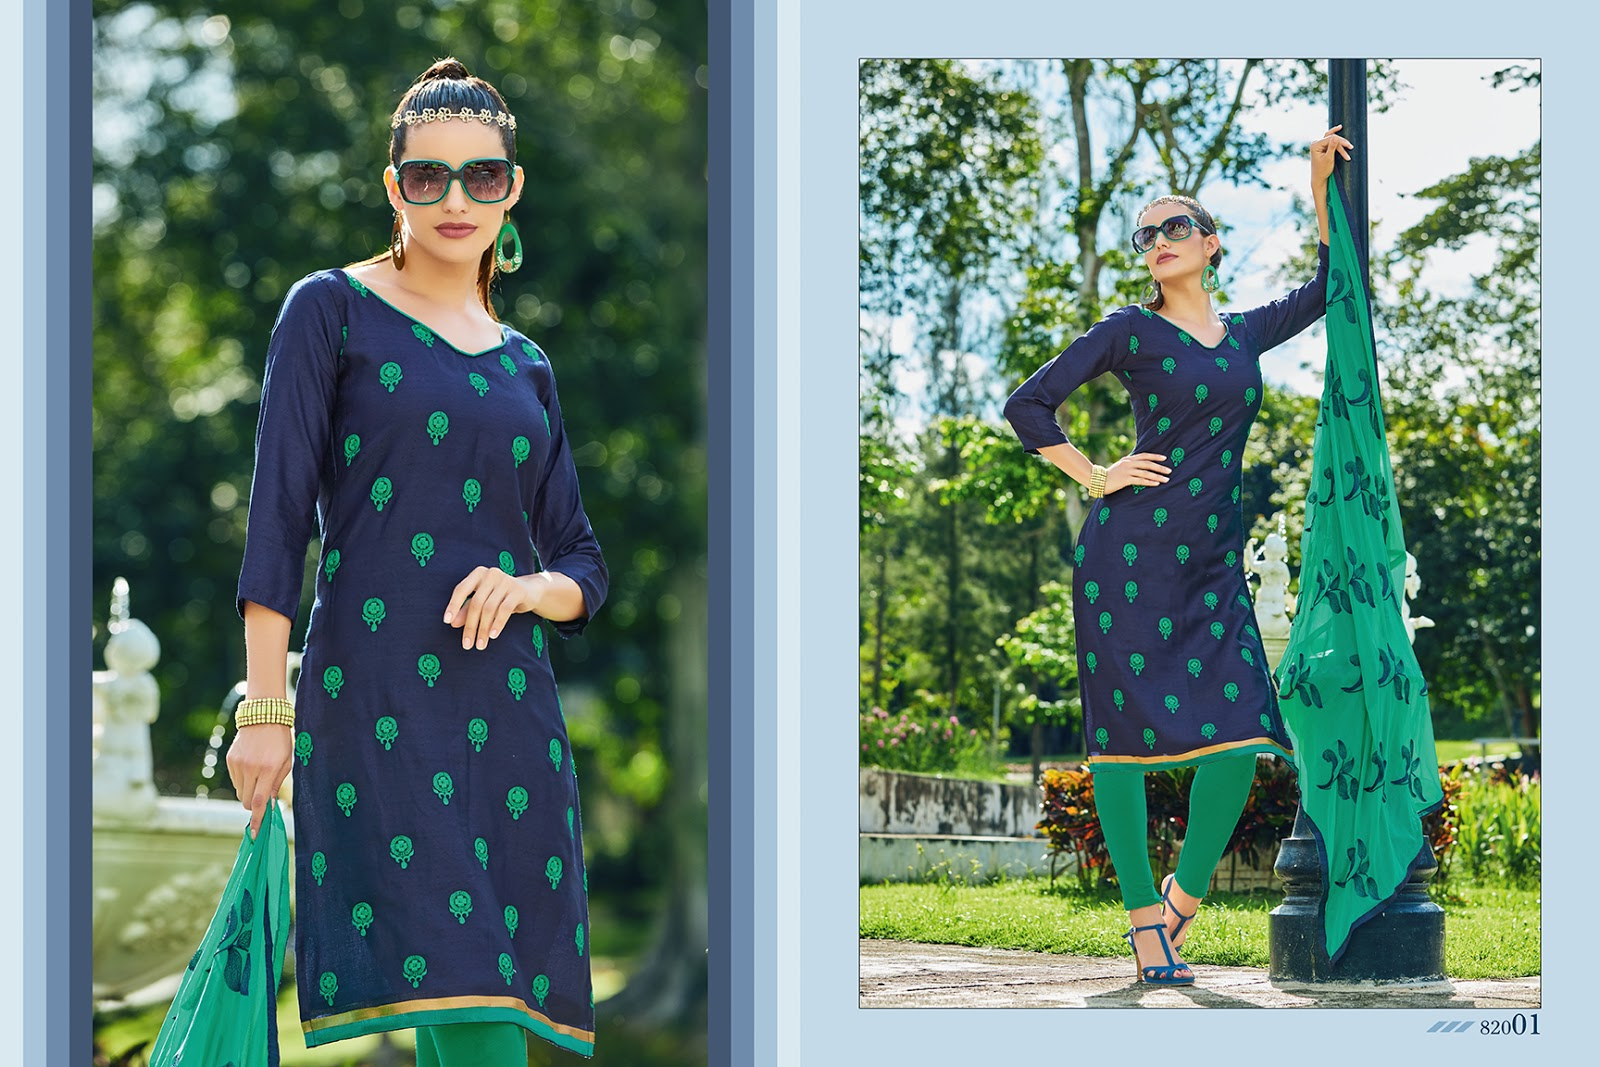 Kavvya-82(Currency)-New Arrival Mumbai Cotton Dress Material